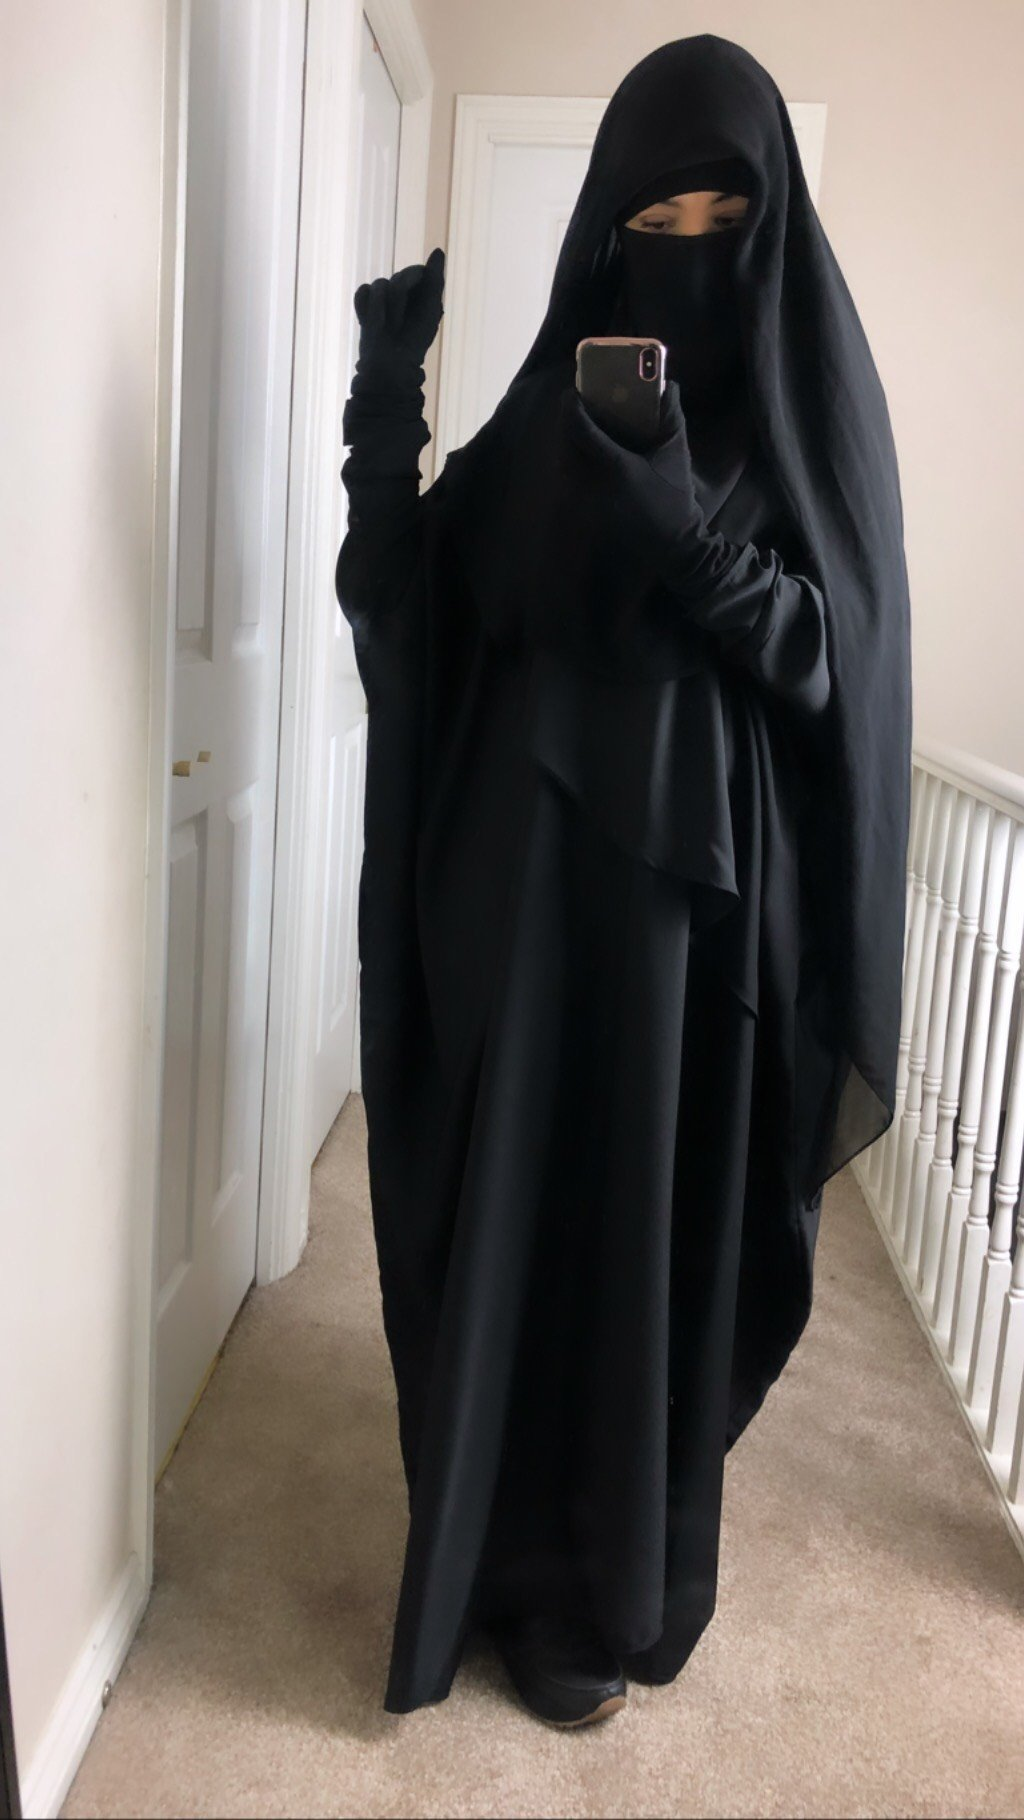 NEW ABAYA MUMMY WAVY Black